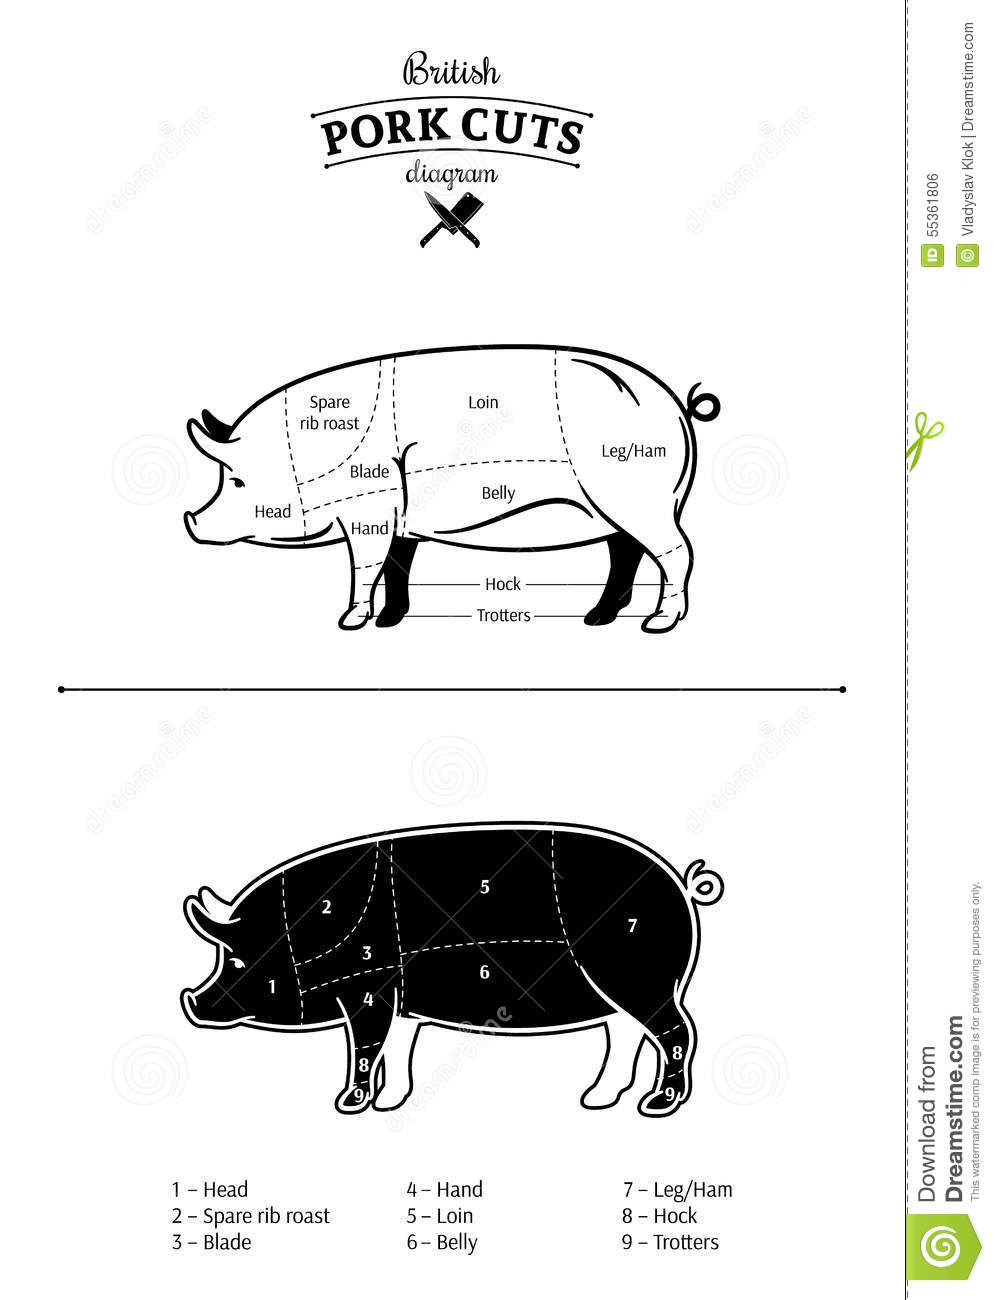 medium resolution of british pork cuts diagram